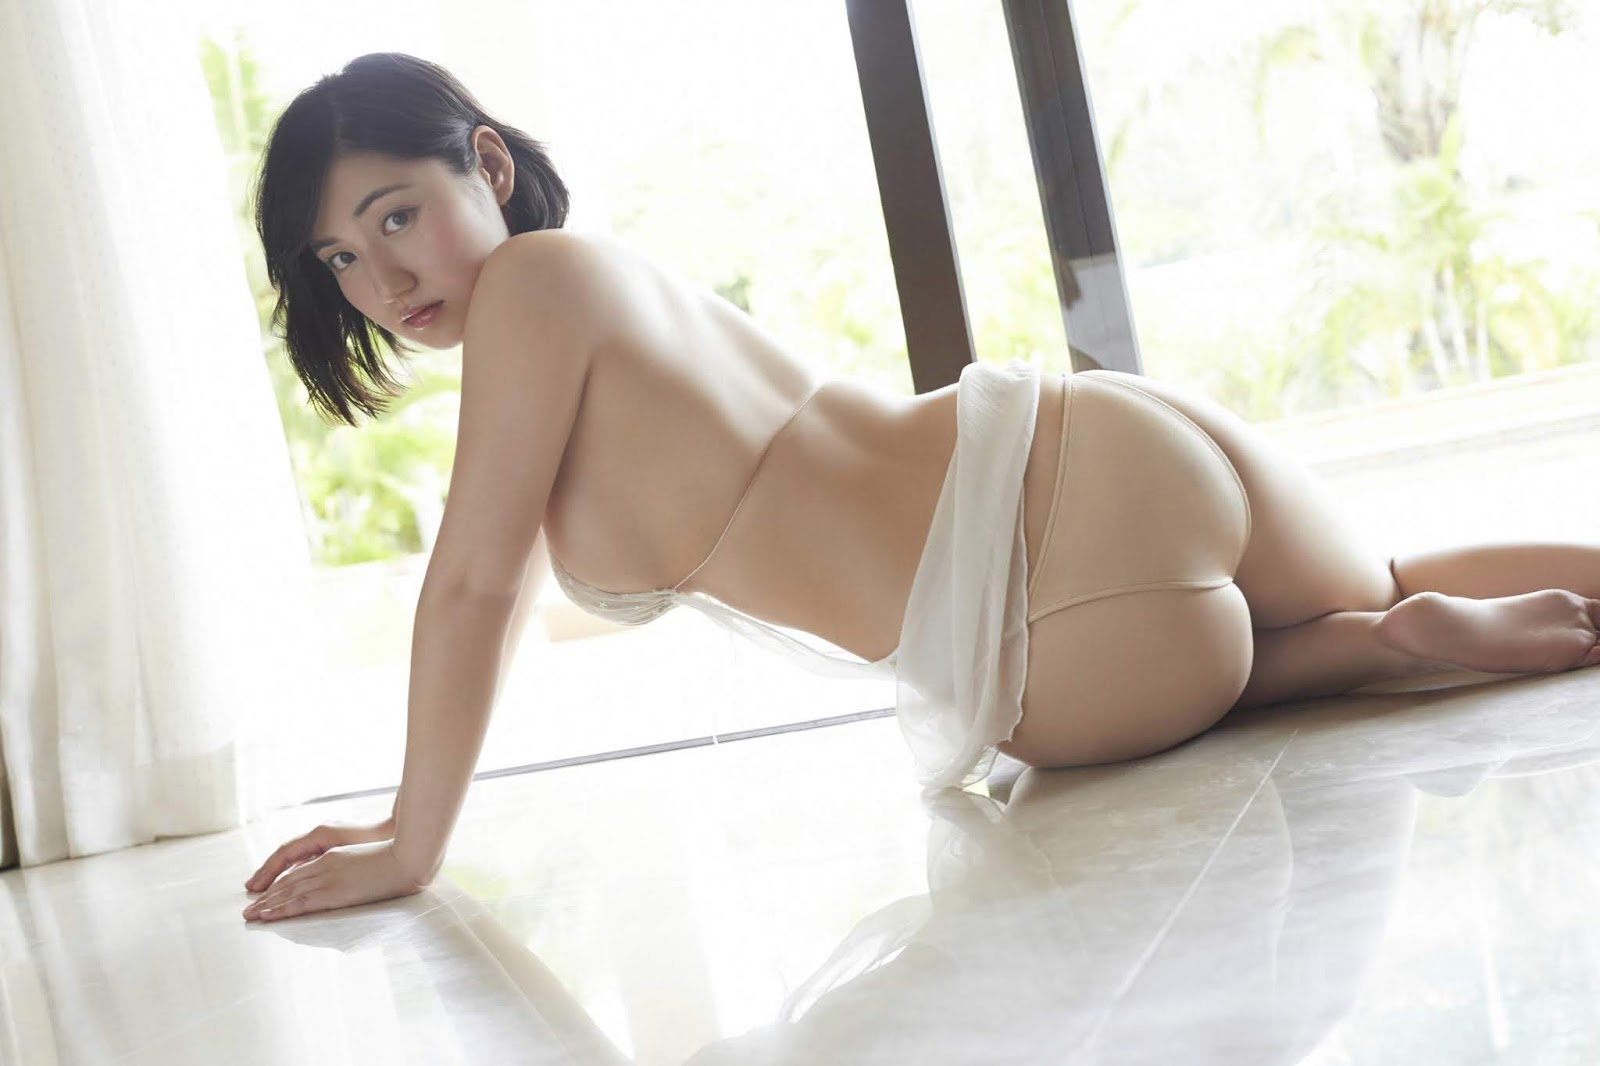 Saaya goes nude for tabloid shoot tokyo kinky sex, erotic and adult japan